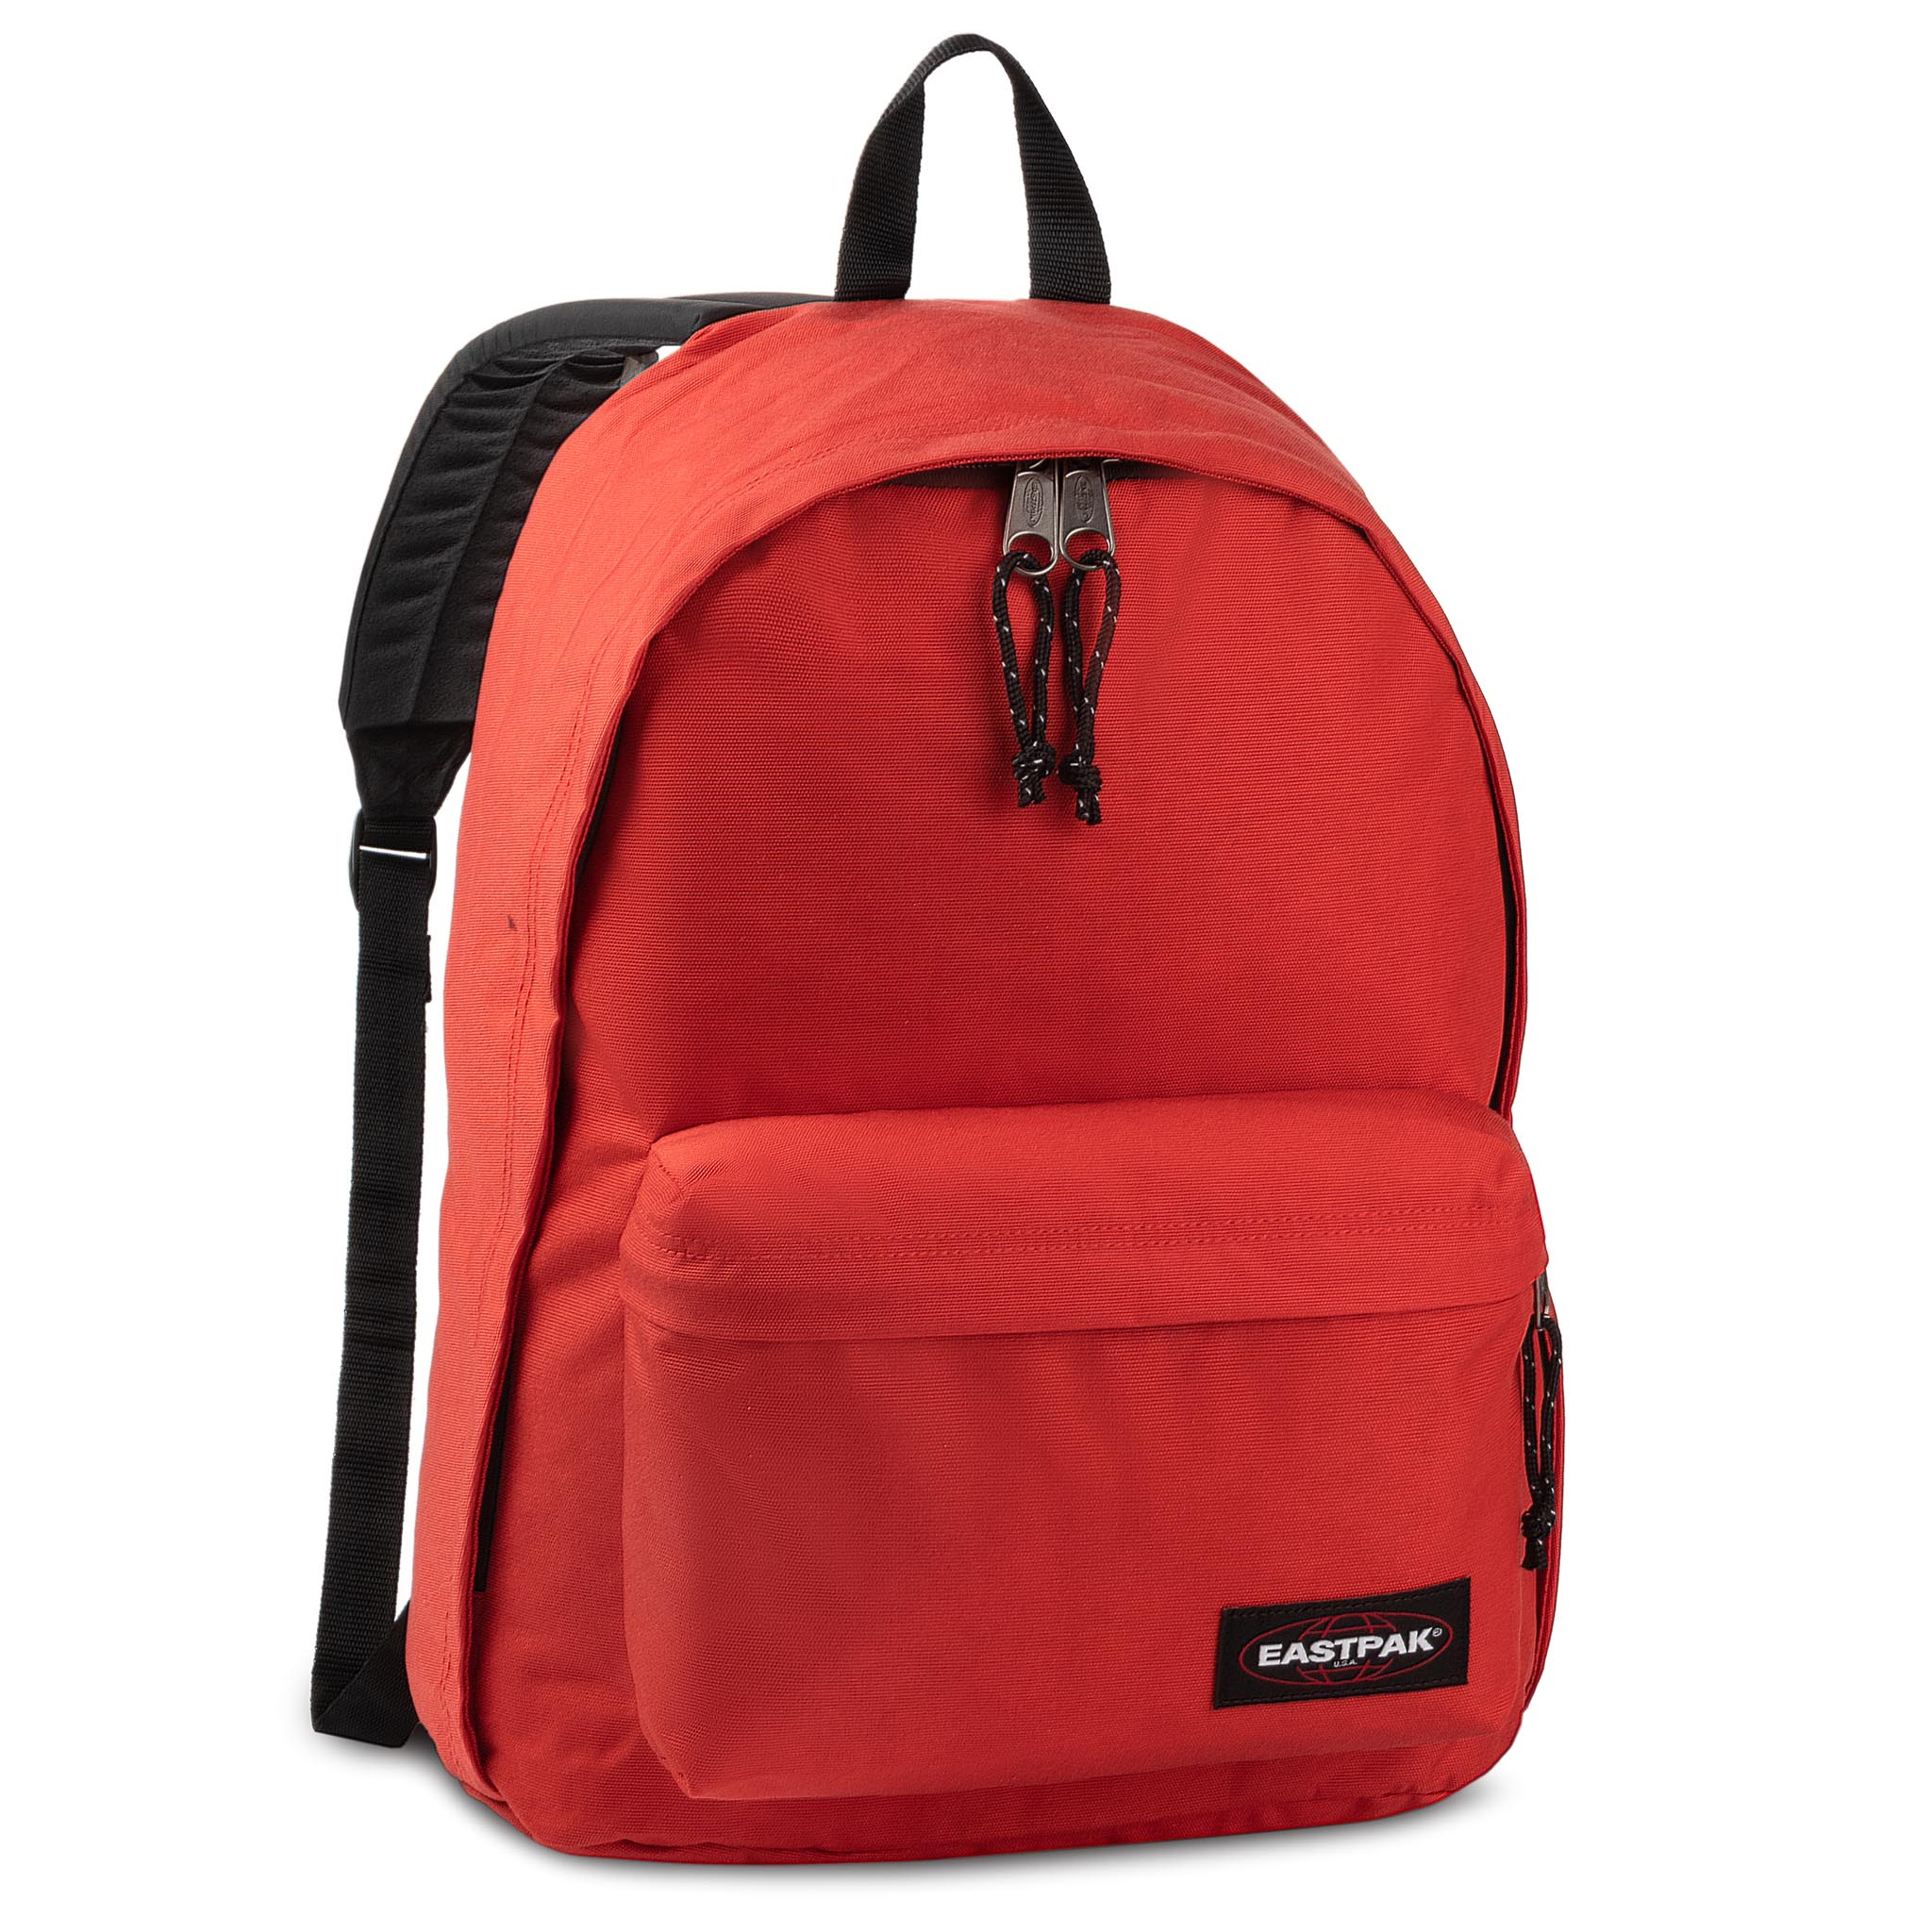 Rucsac EASTPAK - Out Of Office EK767 Teasing Red 01X